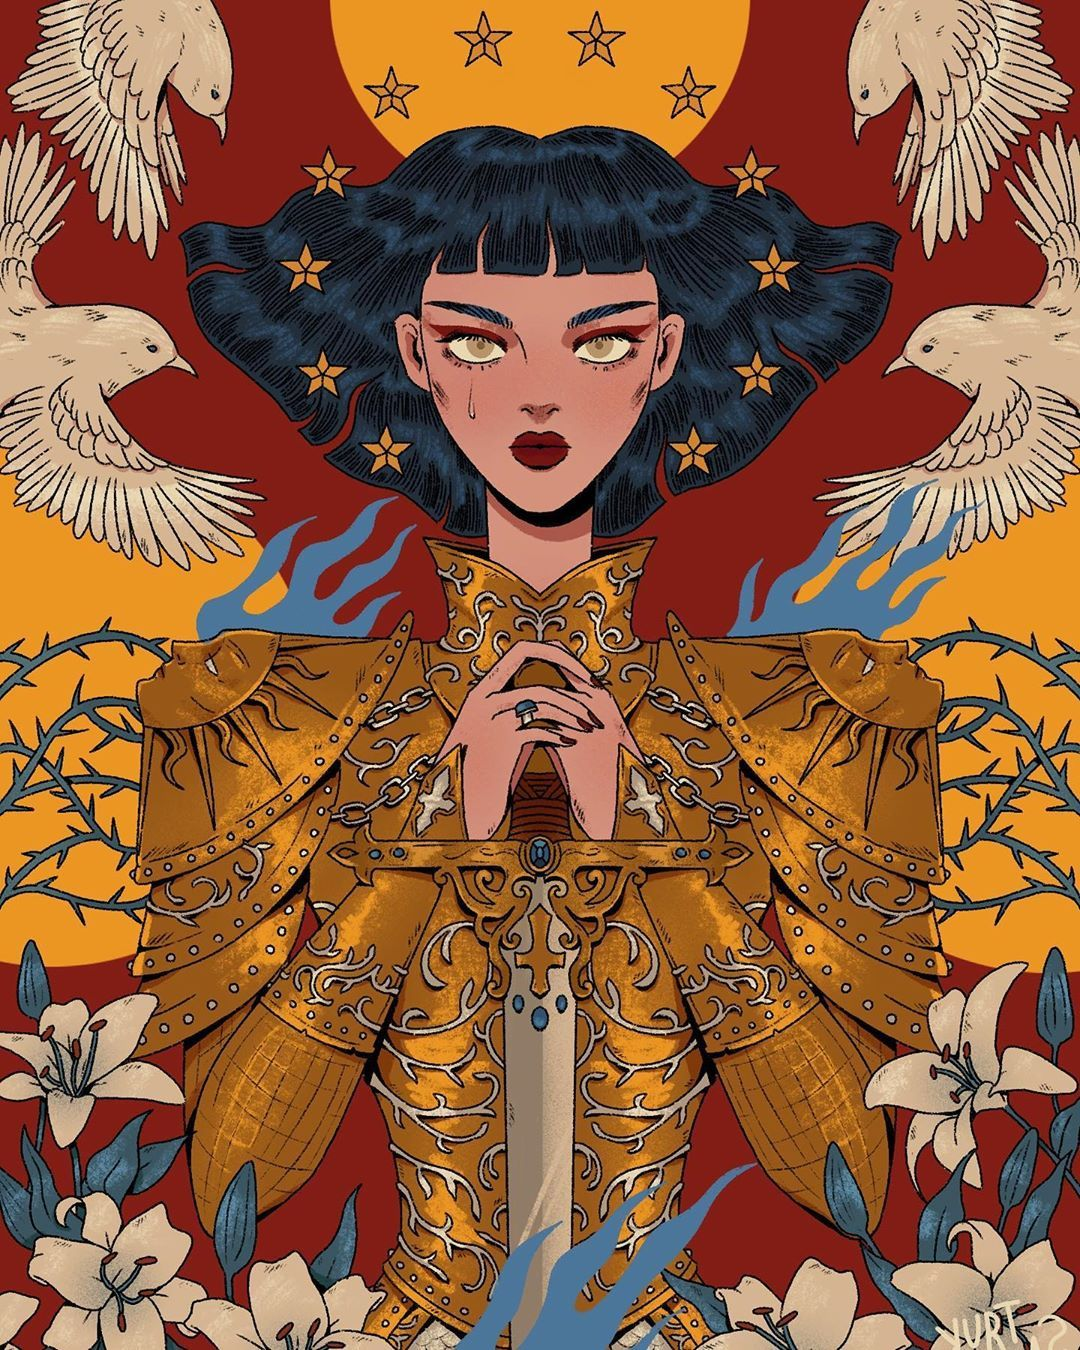 Joan Of Arc This Is My Most Intricate Illustration So